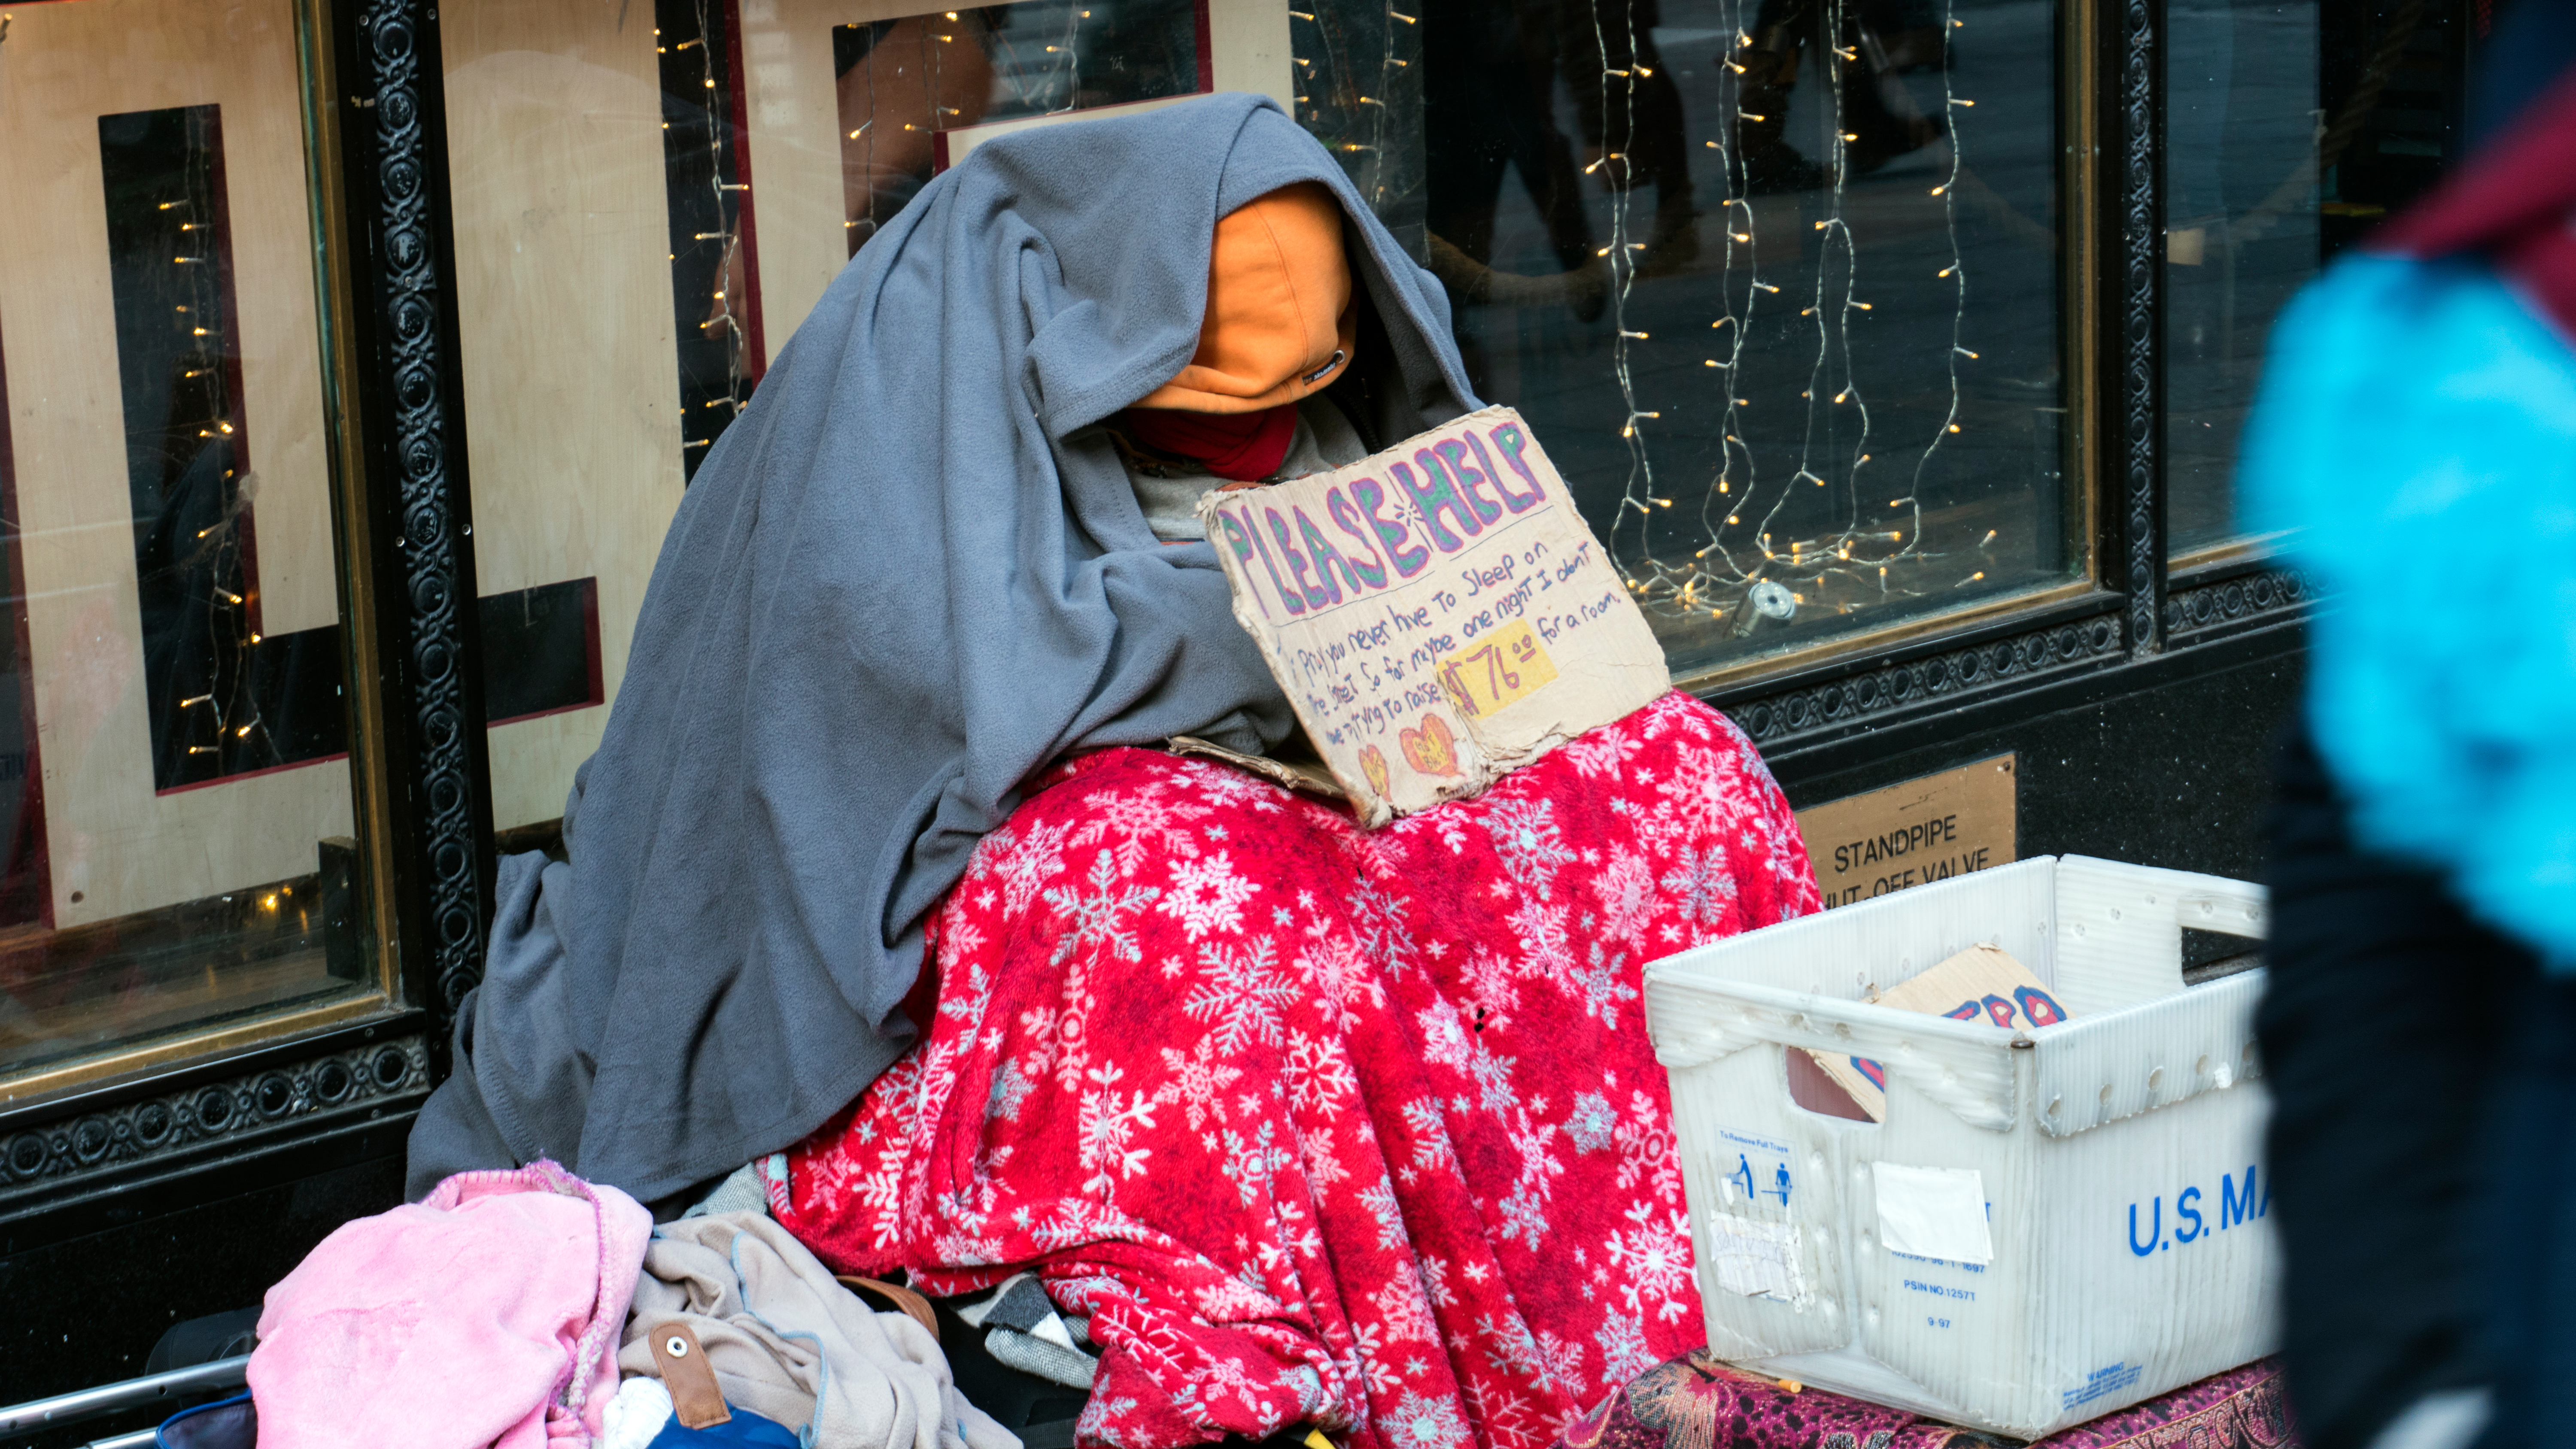 """A homeless person sitting in a New York City street, covered in blankets with a sign that says """"Please Help."""""""